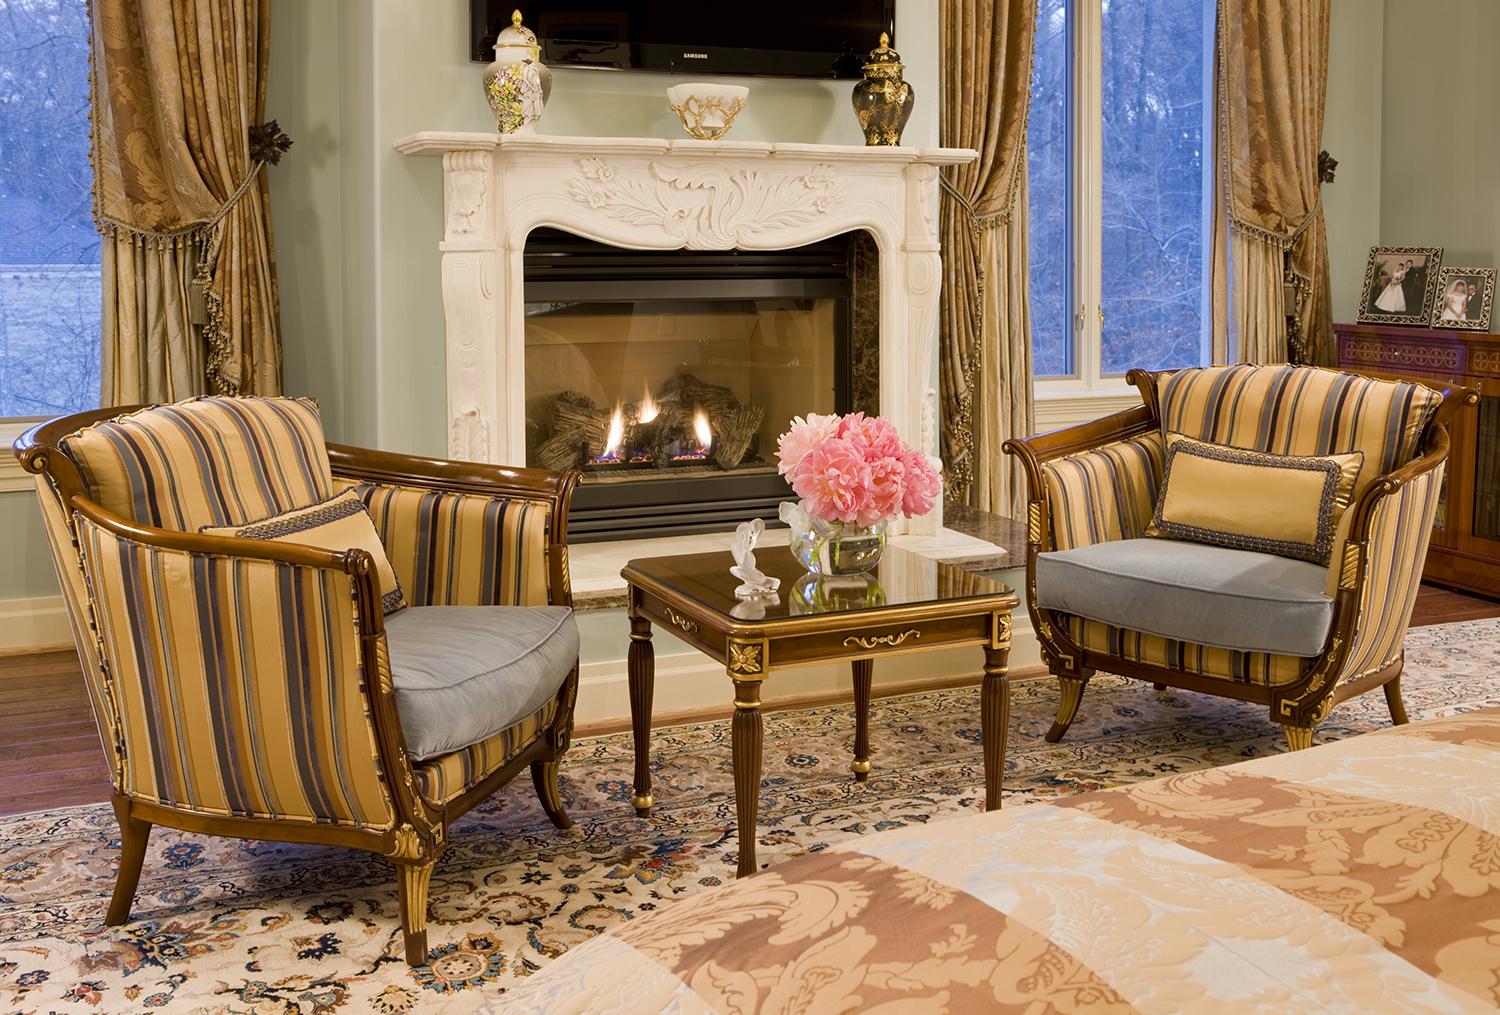 Two chairs in front of a fireplace